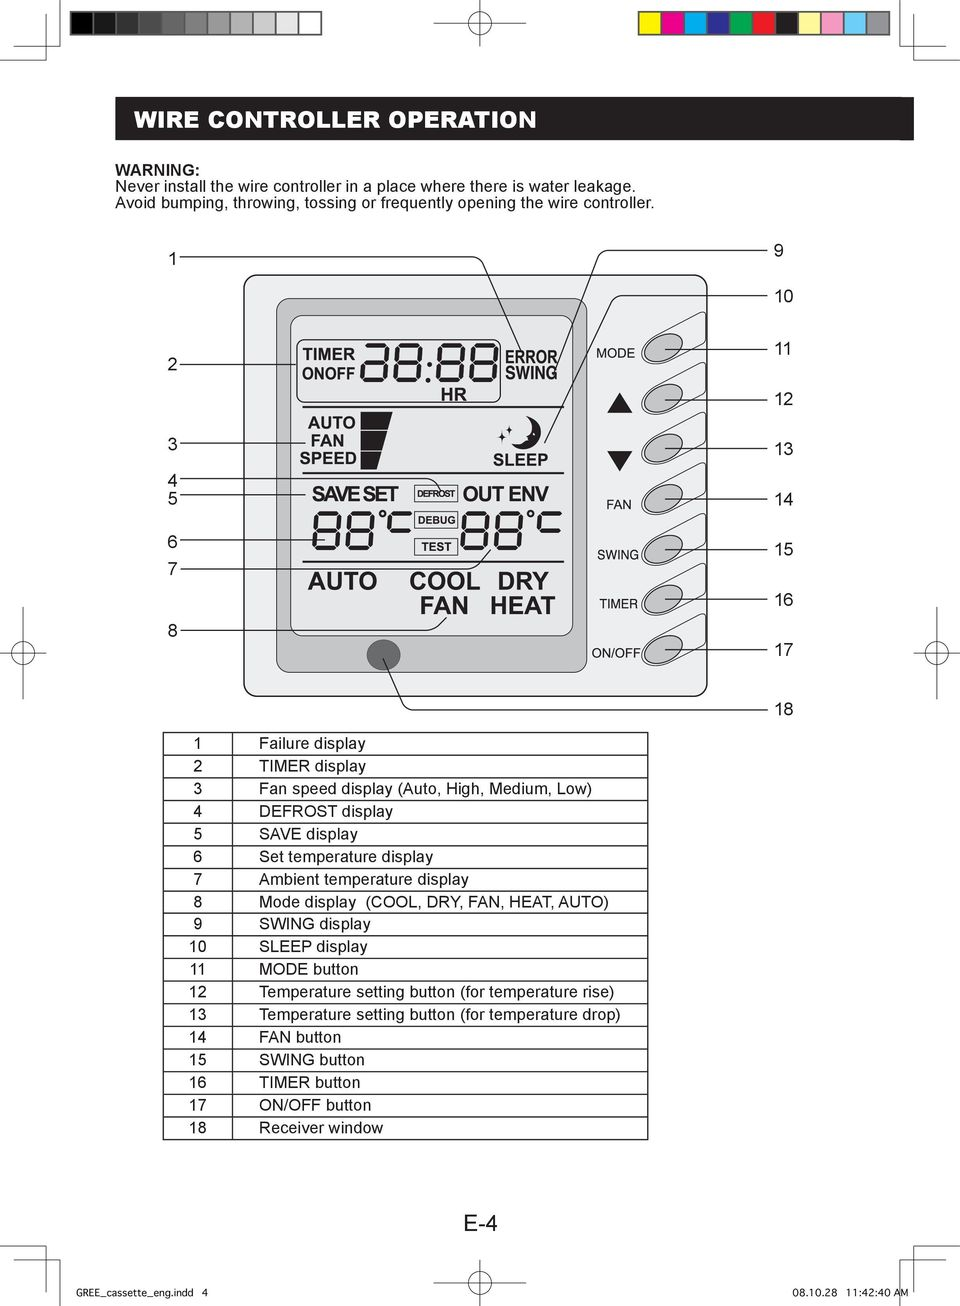 9 0 3 4 5 6 7 8 3 4 5 6 7 8 Failure display TIMER display 3 Fan speed display (Auto, High, Medium, Low) 4 DEFROST display 5 SAVE display 6 Set temperature display 7 Ambient